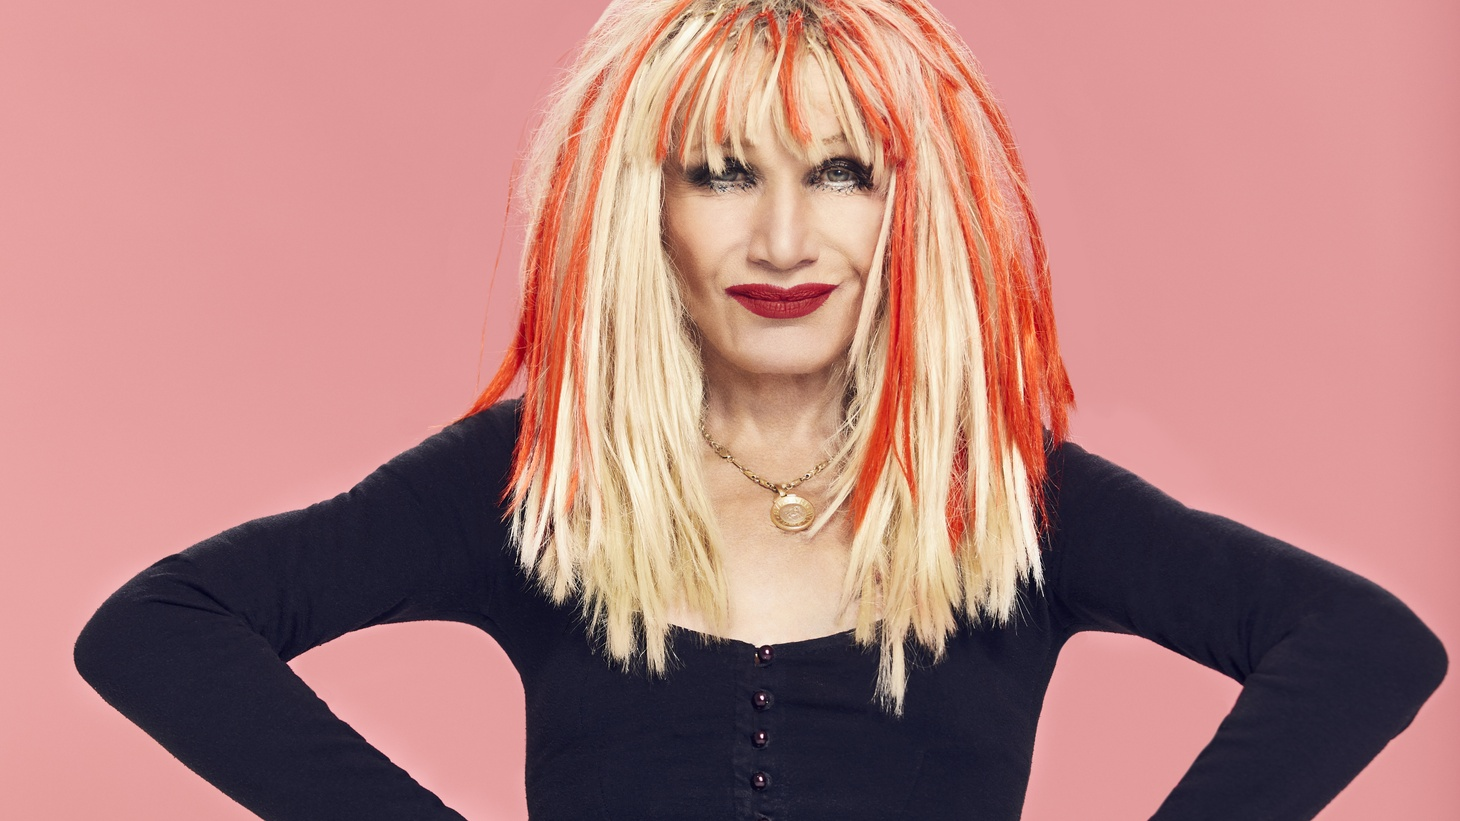 Betsey Johnson talks to KCRW about her pretty and punk style, and why she ends fashion shows by doing a cartwheel and splits.